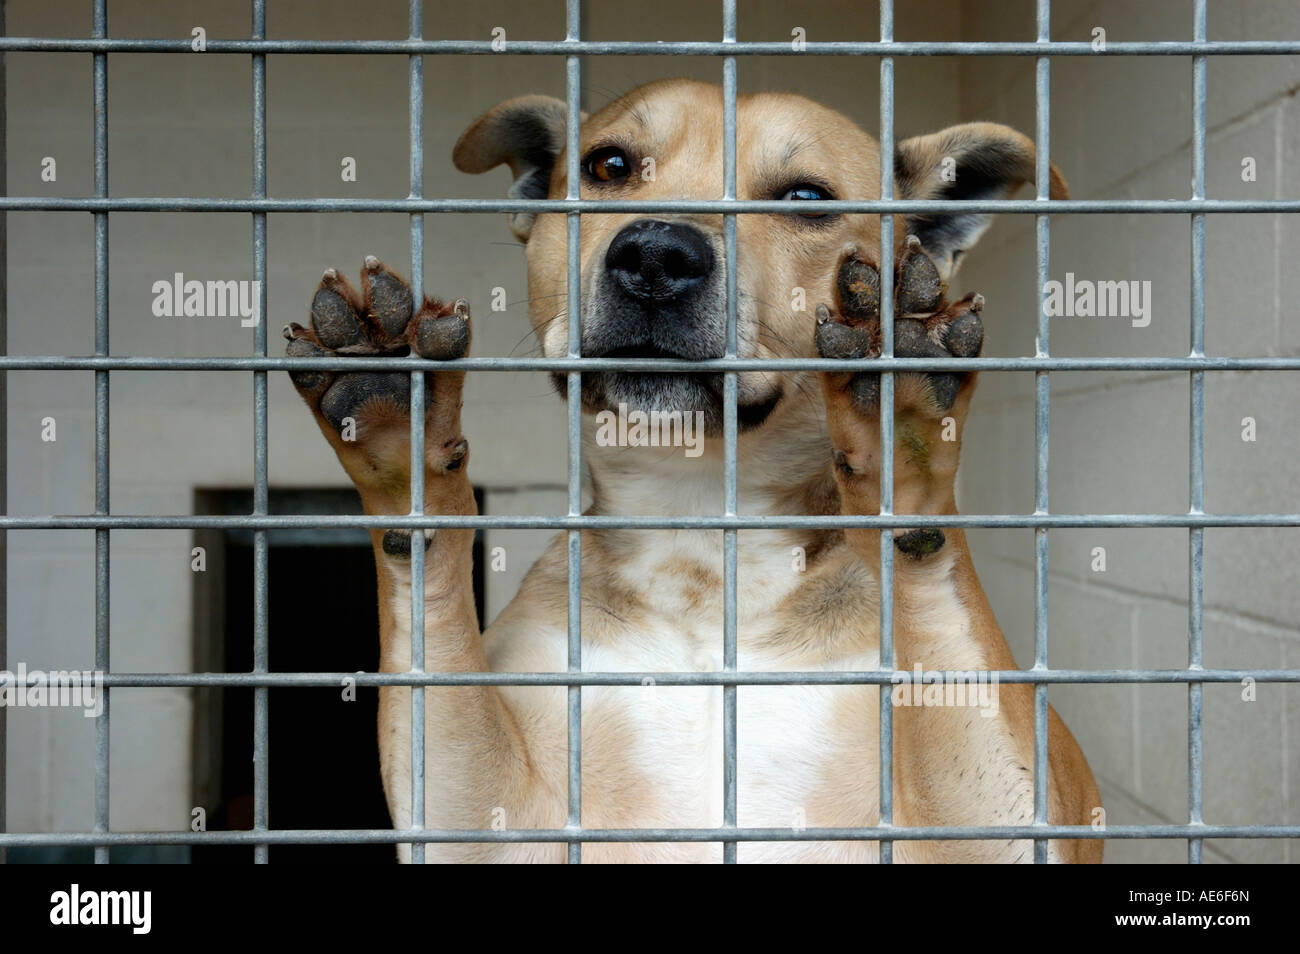 Unwanted dogs left at RSPCA kennels - Stock Image